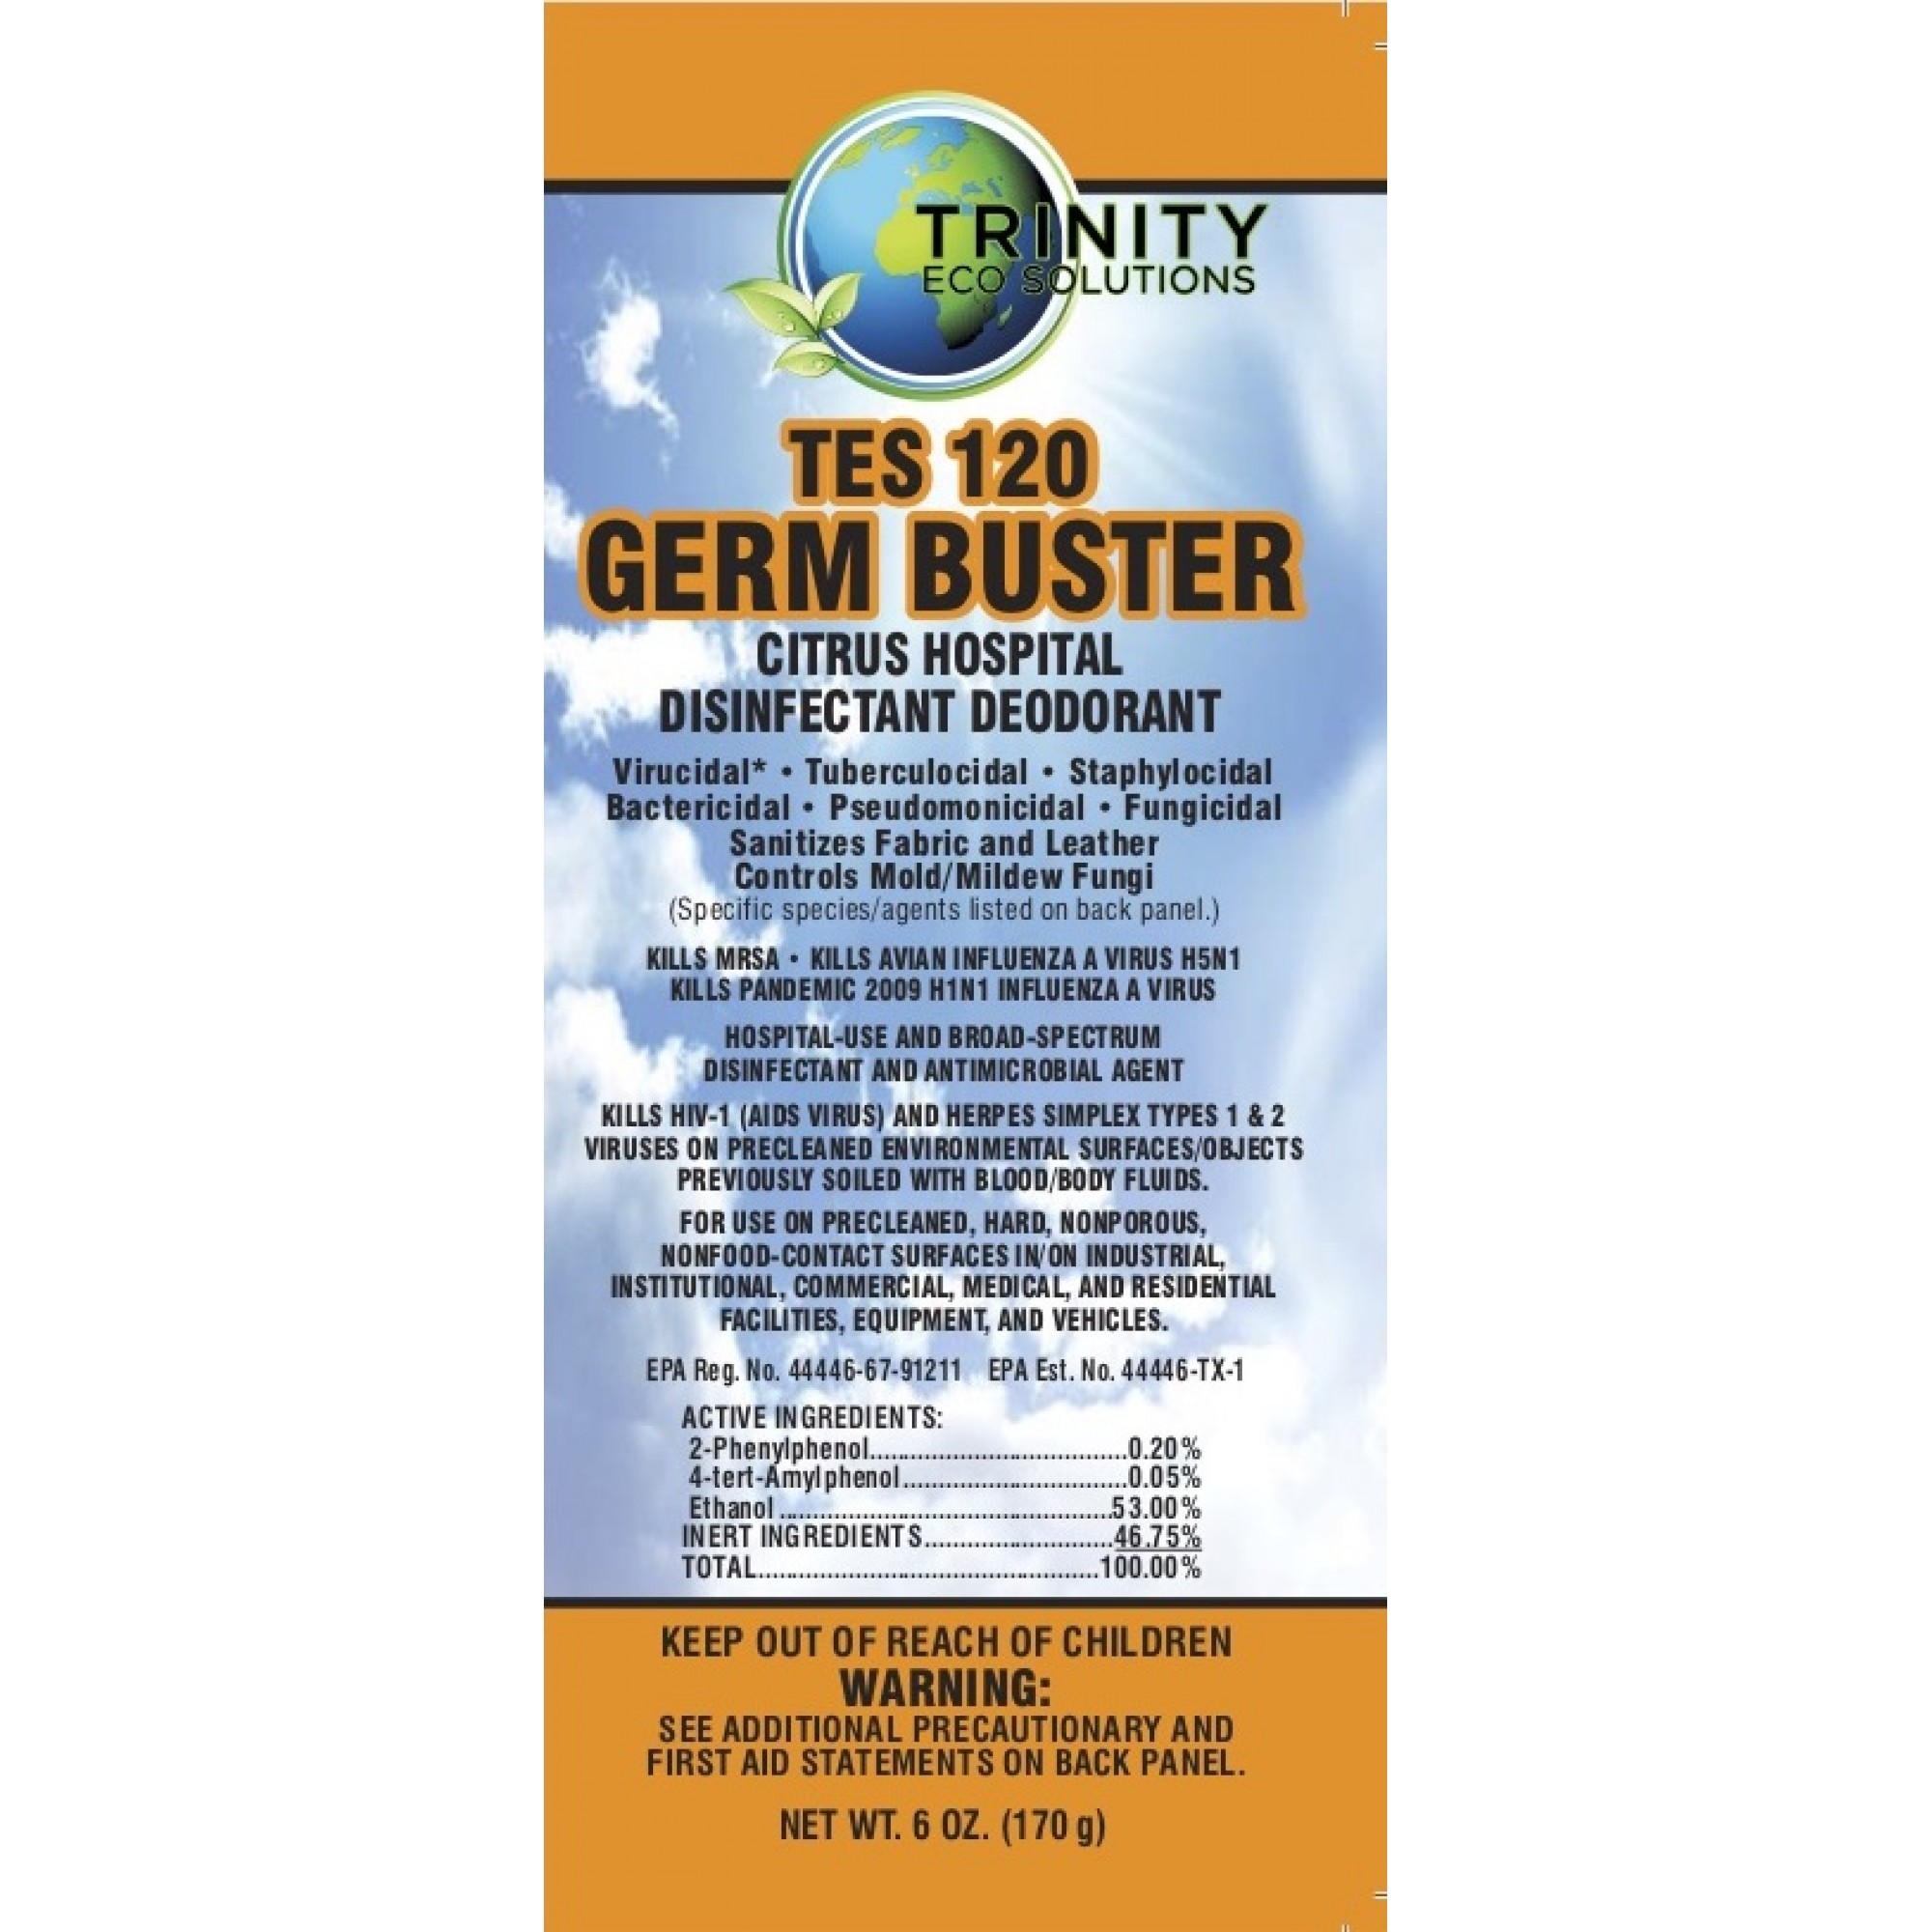 TES 120 Germ Buster-C